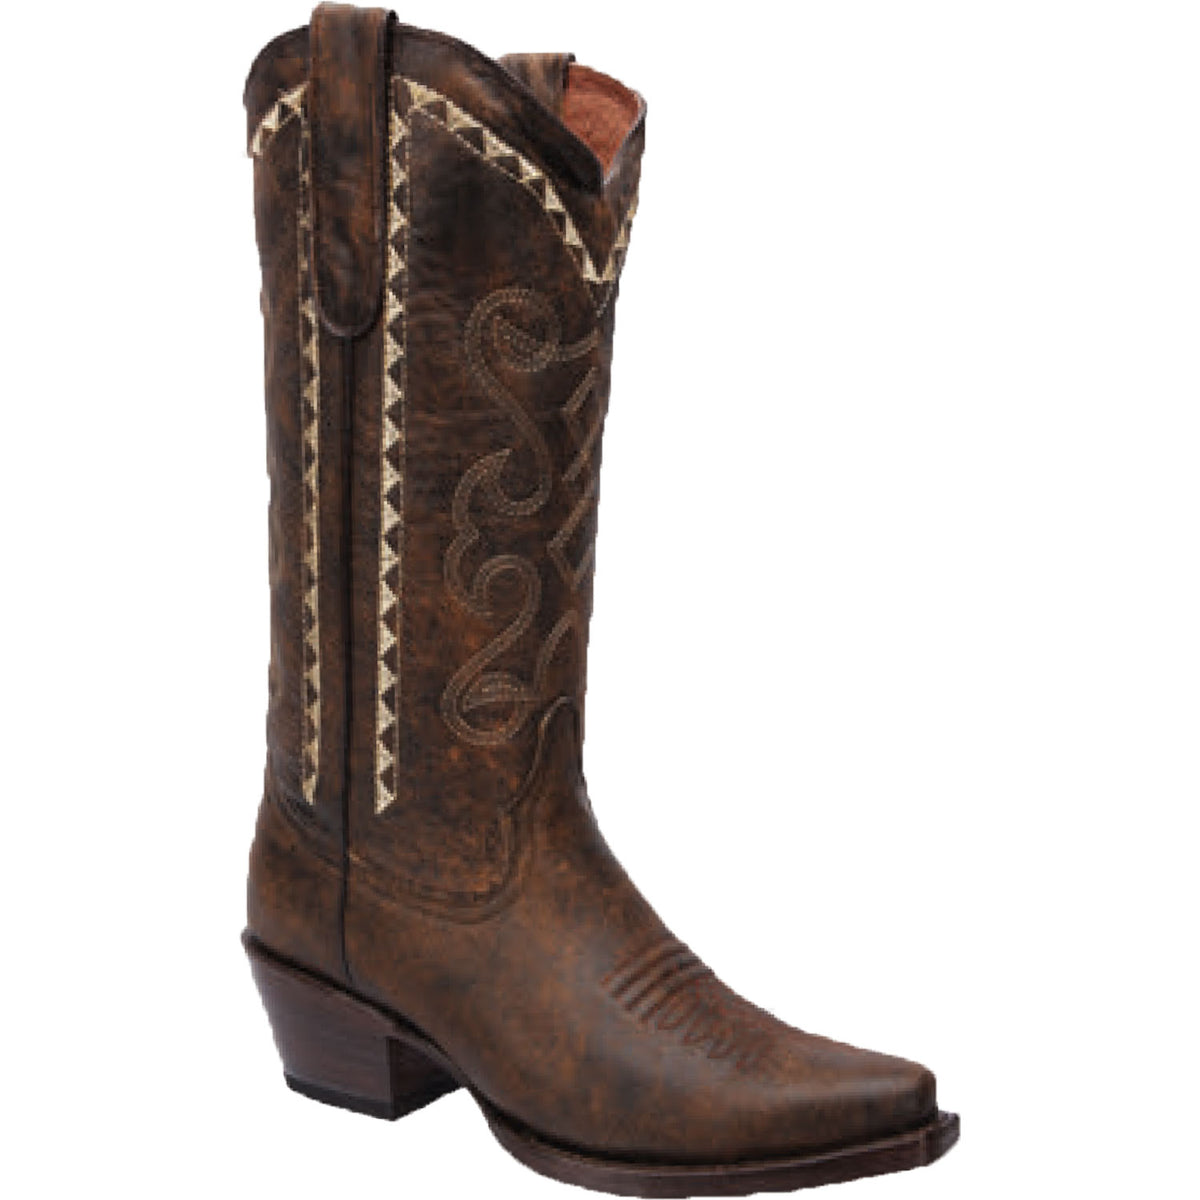 Genuine Leather Boot WD561